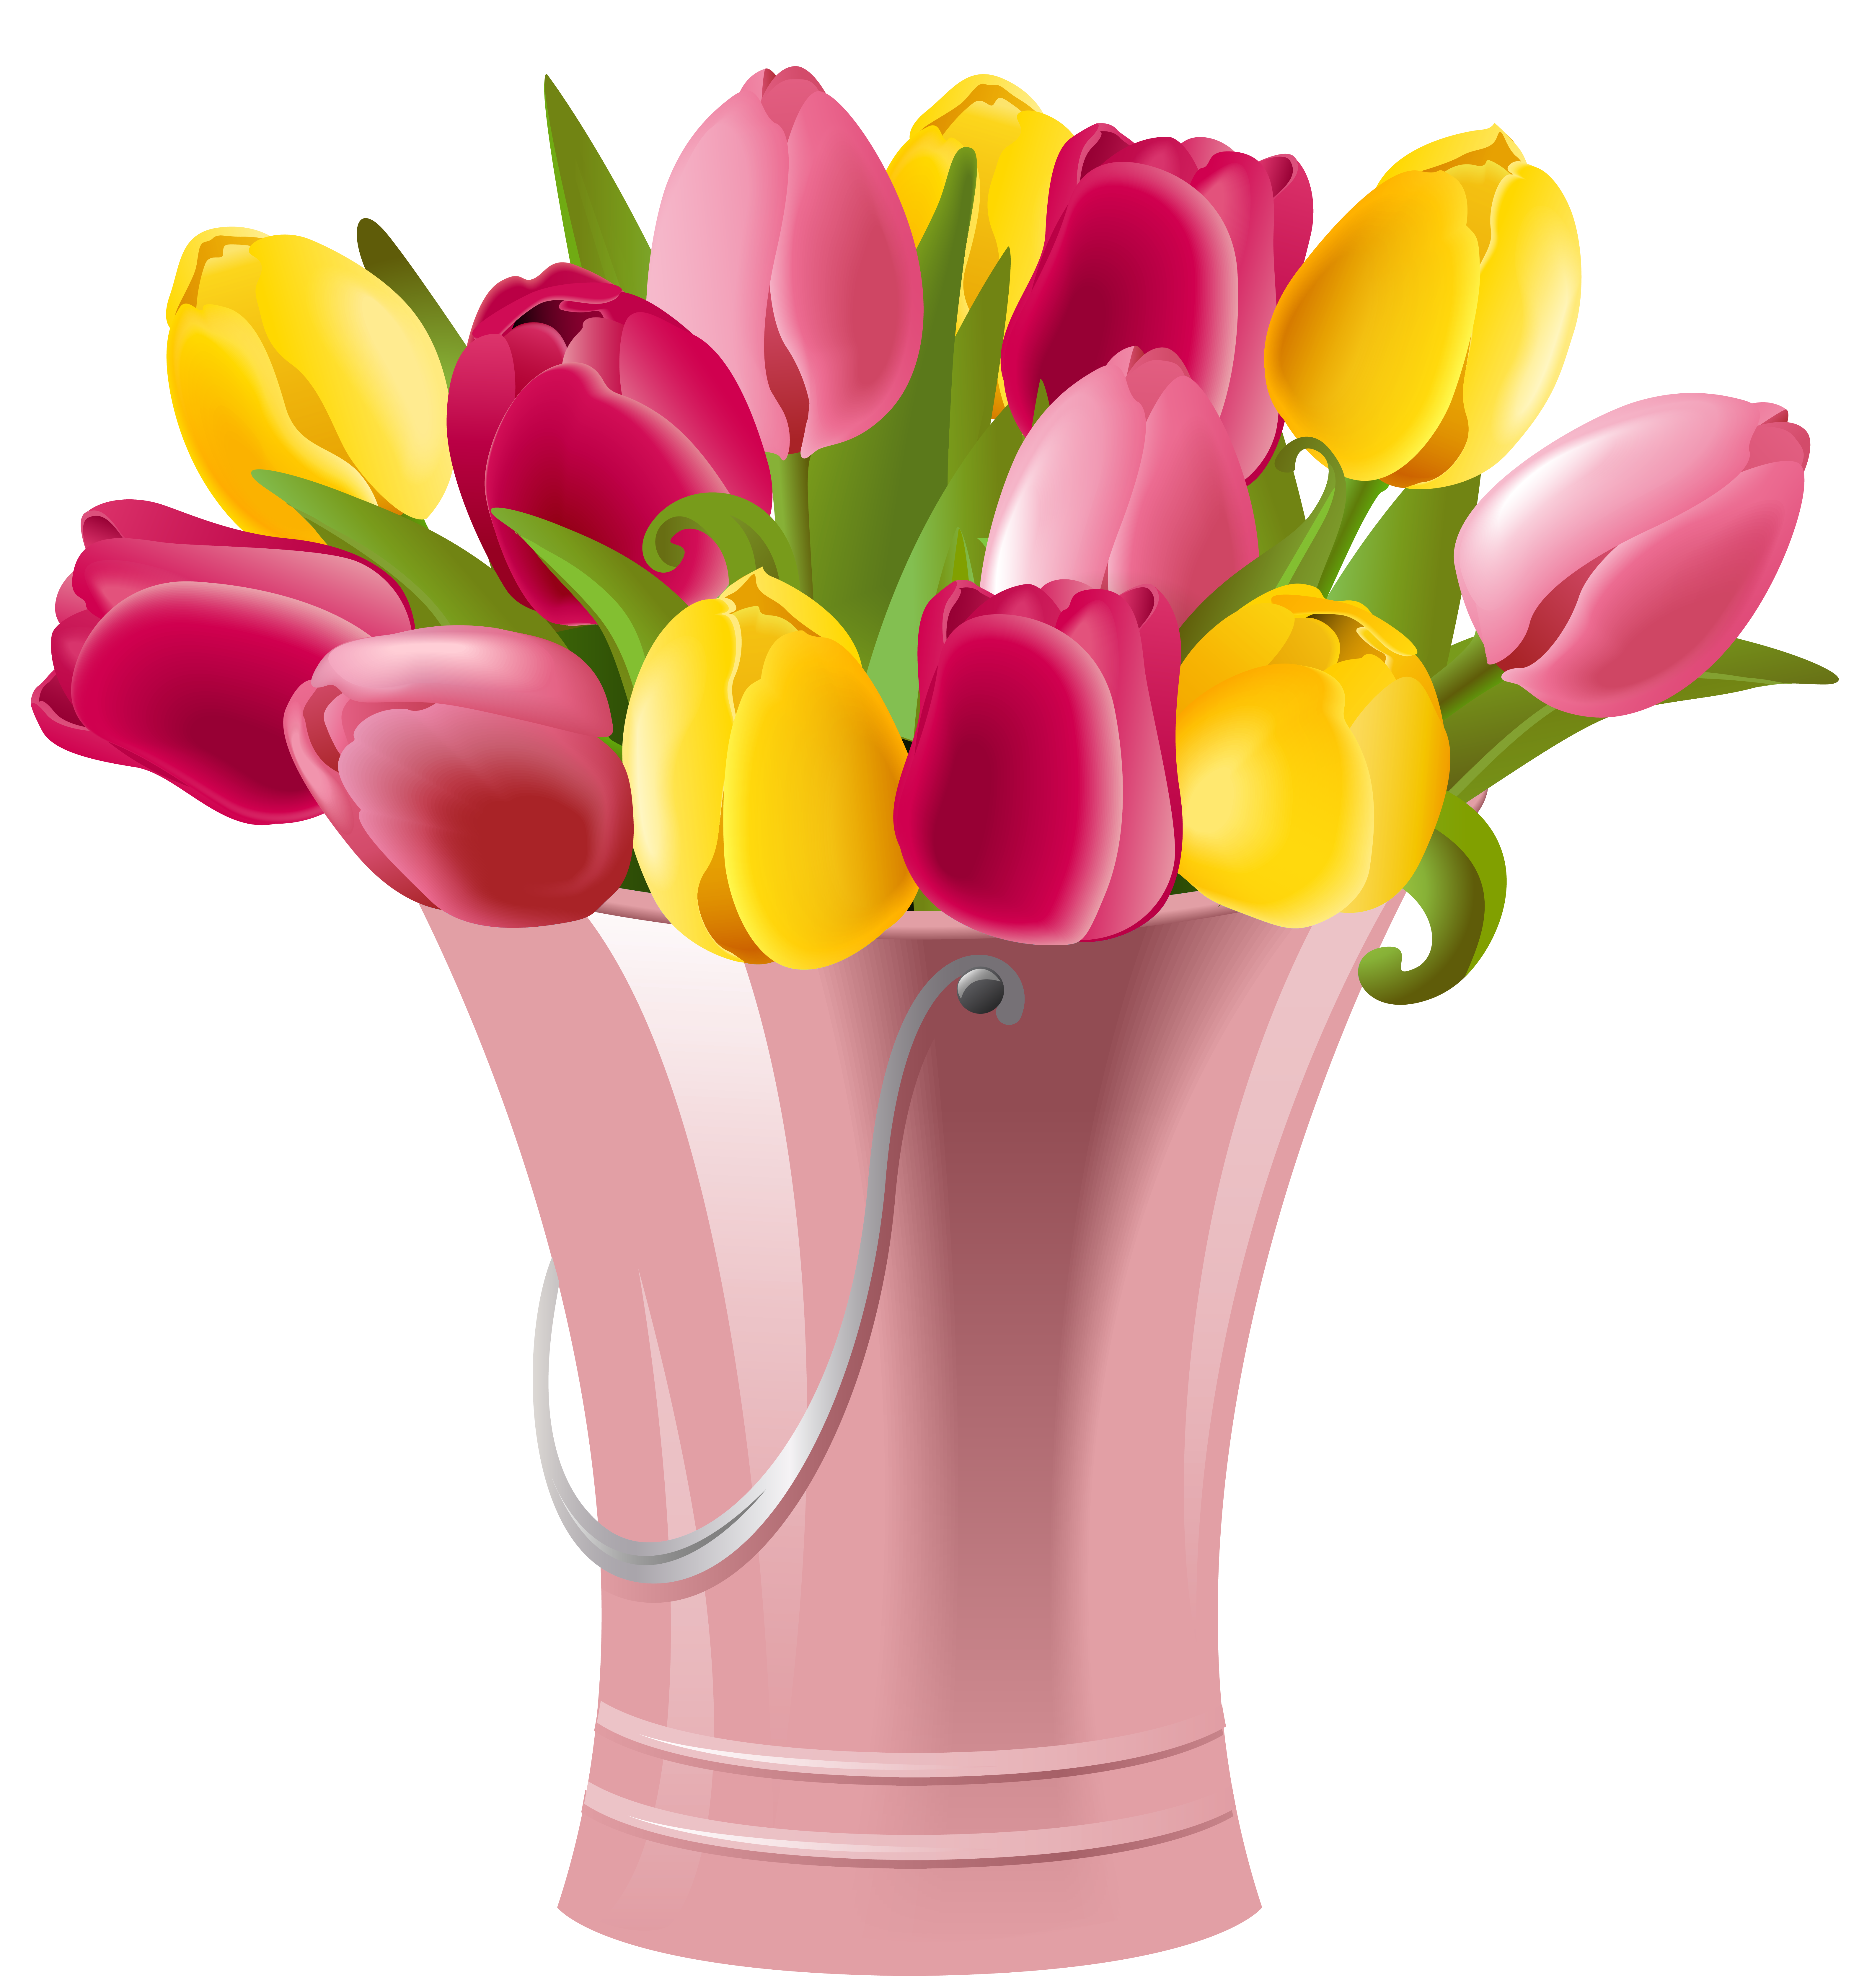 Transparent spring tulip. Bucket with tulips png